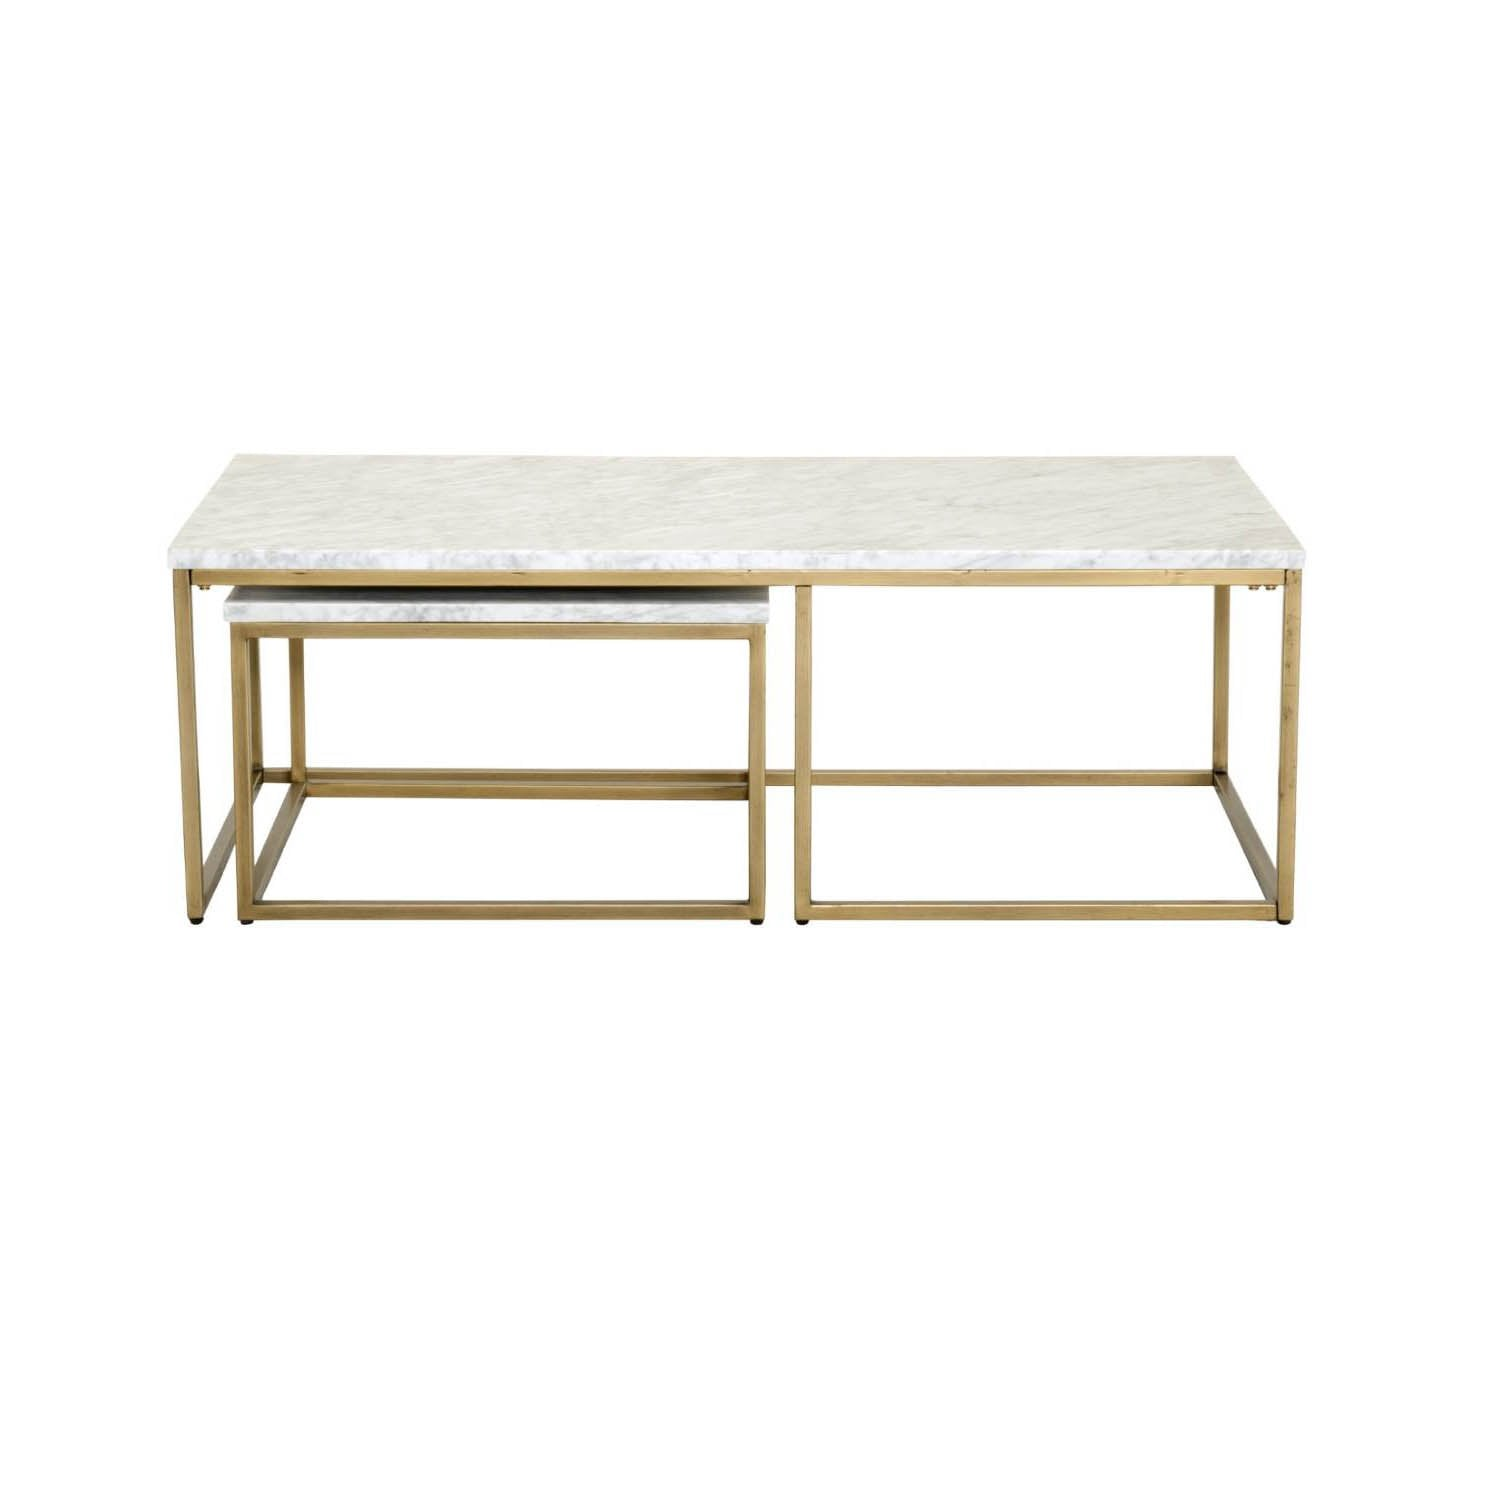 Carrera Nesting Coffee Table in White Carrera Marble